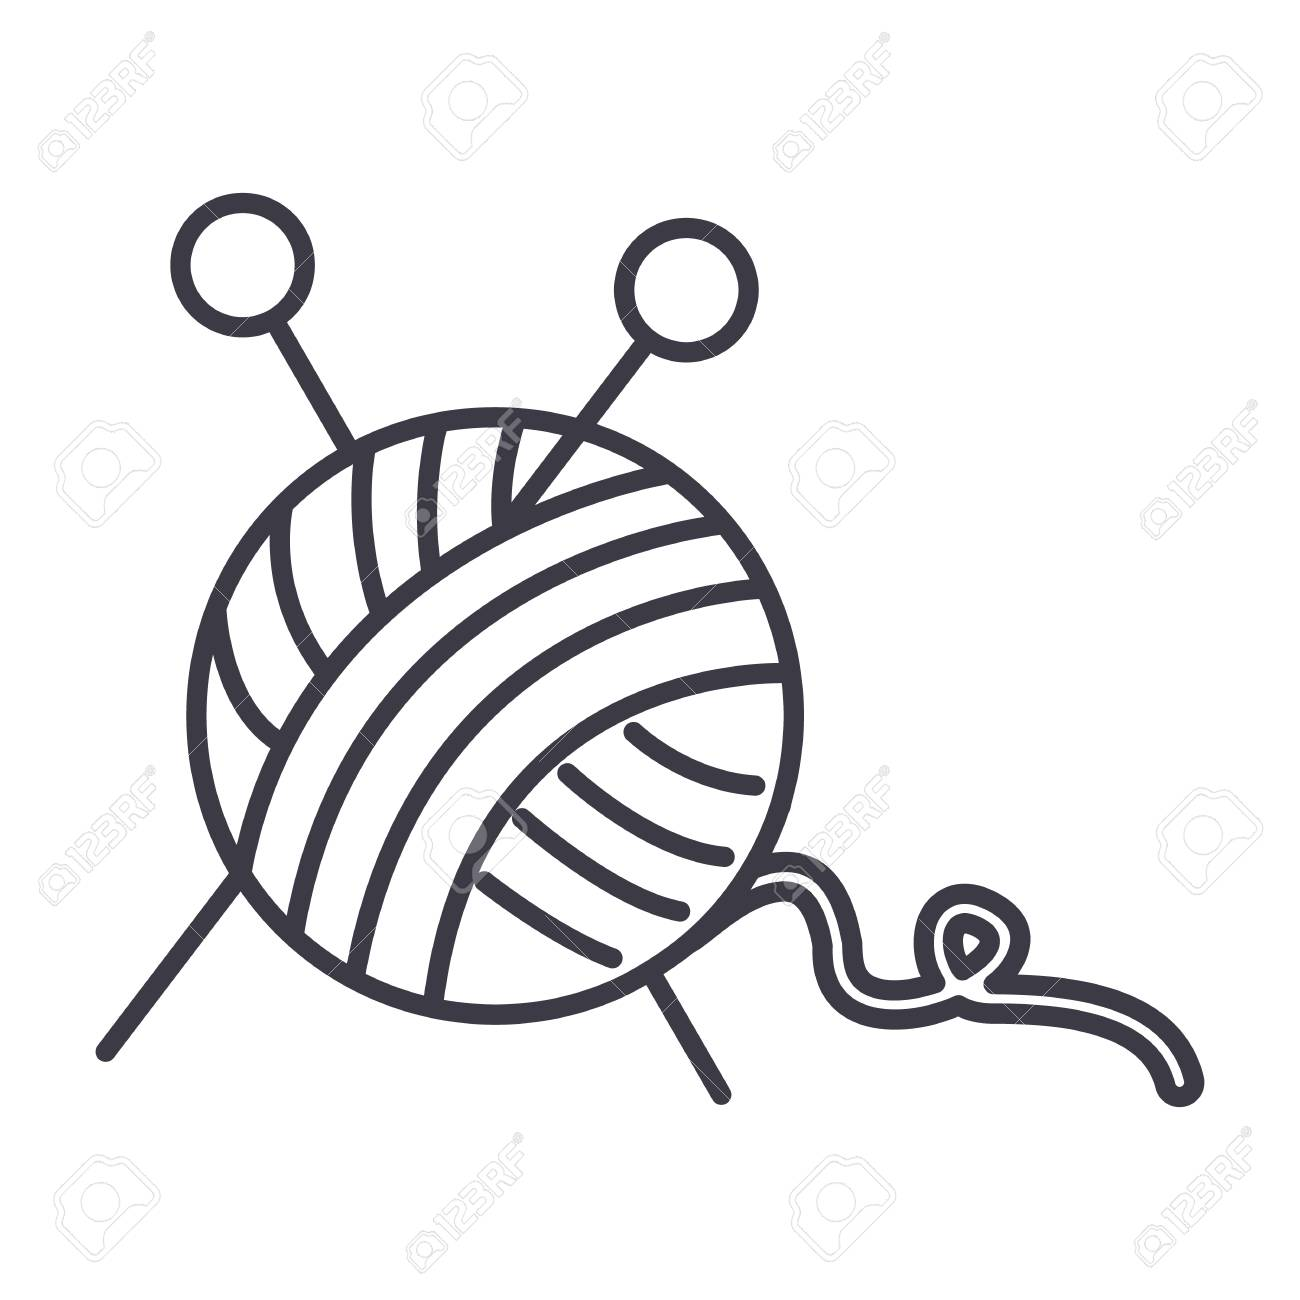 1300x1300 Sewing,ball Of Yarn,knitting Needles Vector Line Icon, Sign